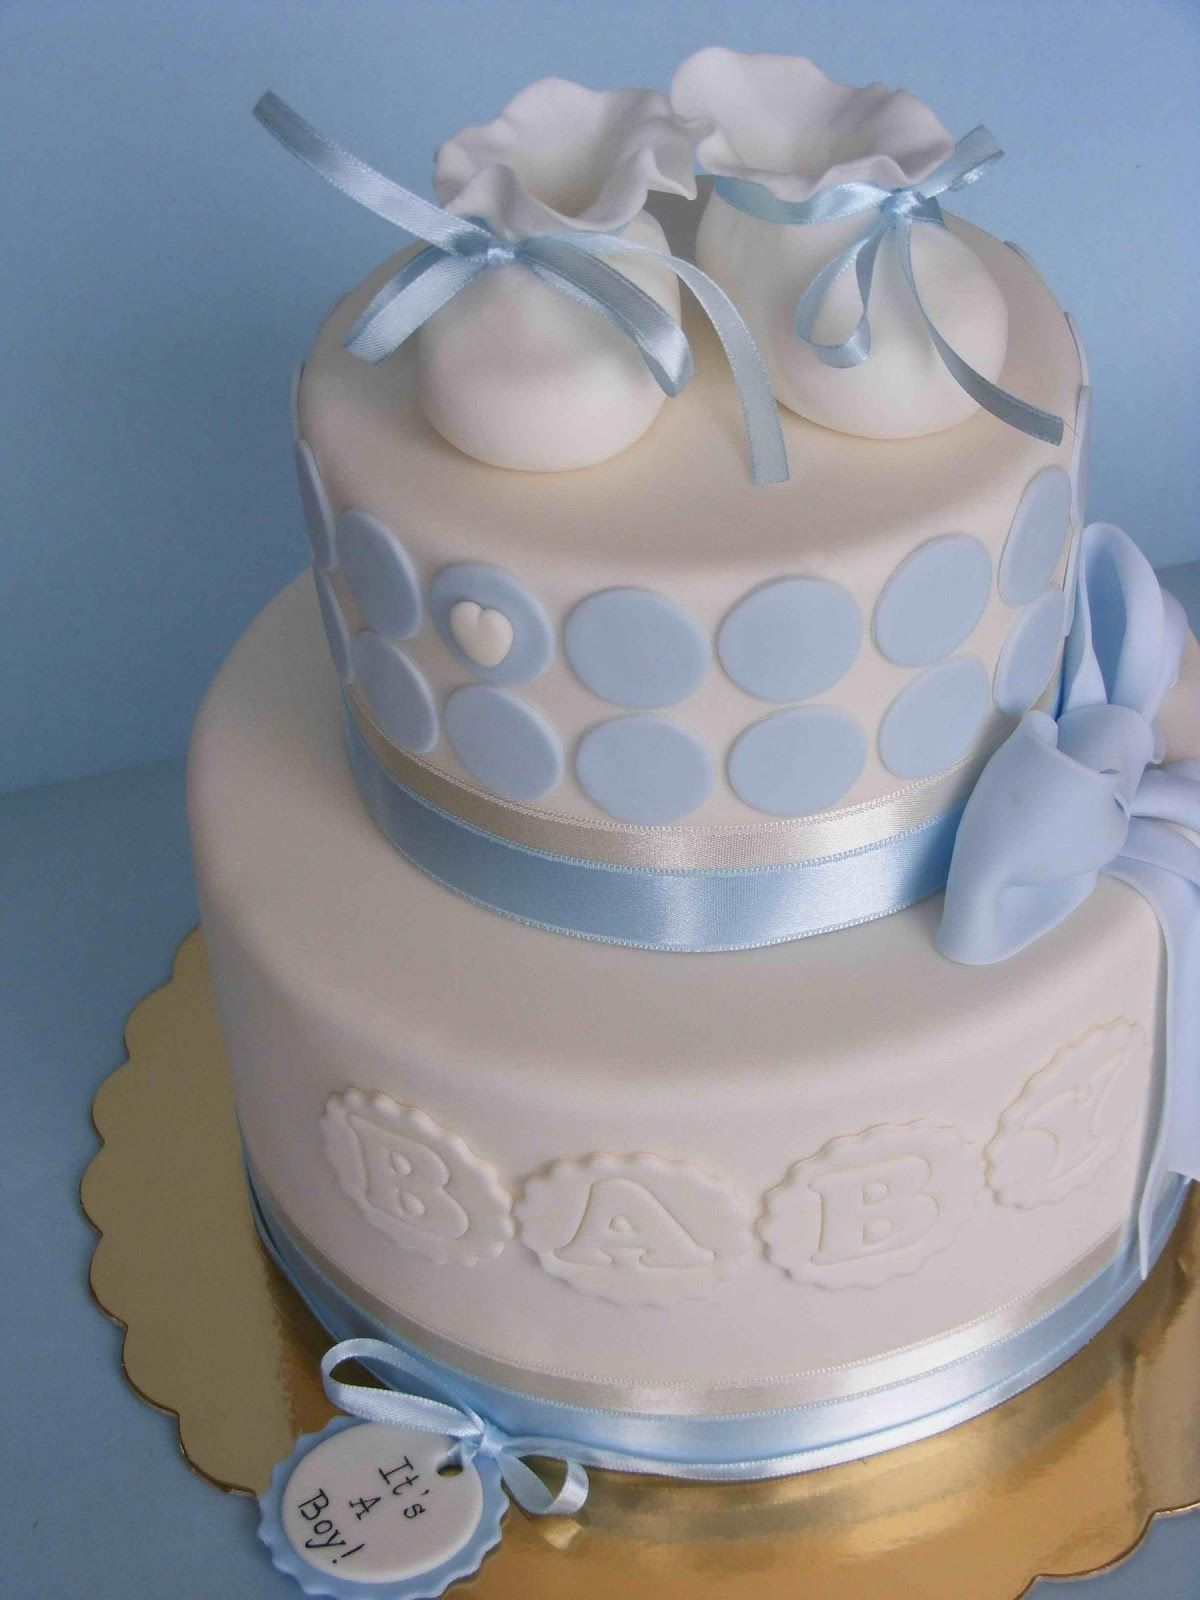 Christening Cake Designs For Baby Boy : Pin by Heather Rolin on Baby & Baptism Cake Ideas ...